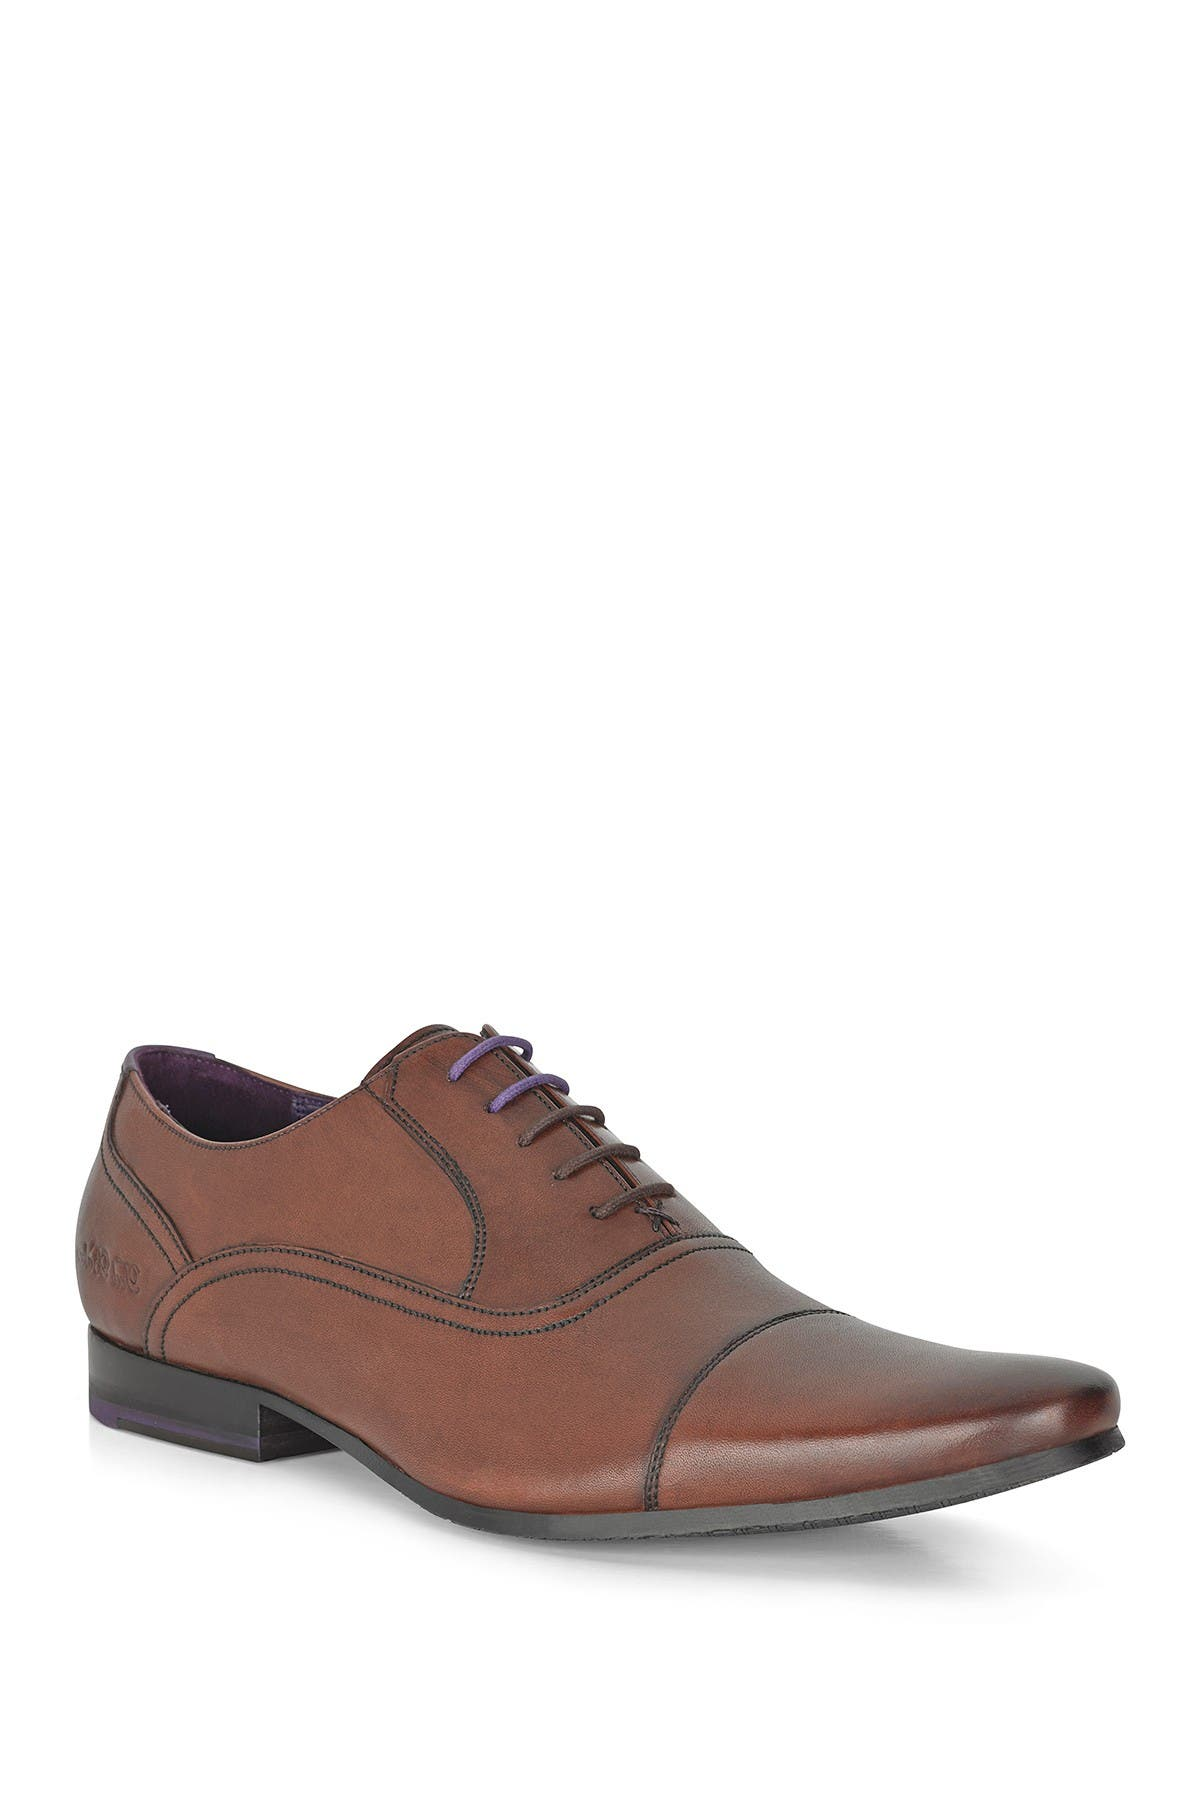 Image of Ted Baker London Rogrr 2 Cap Toe Oxford